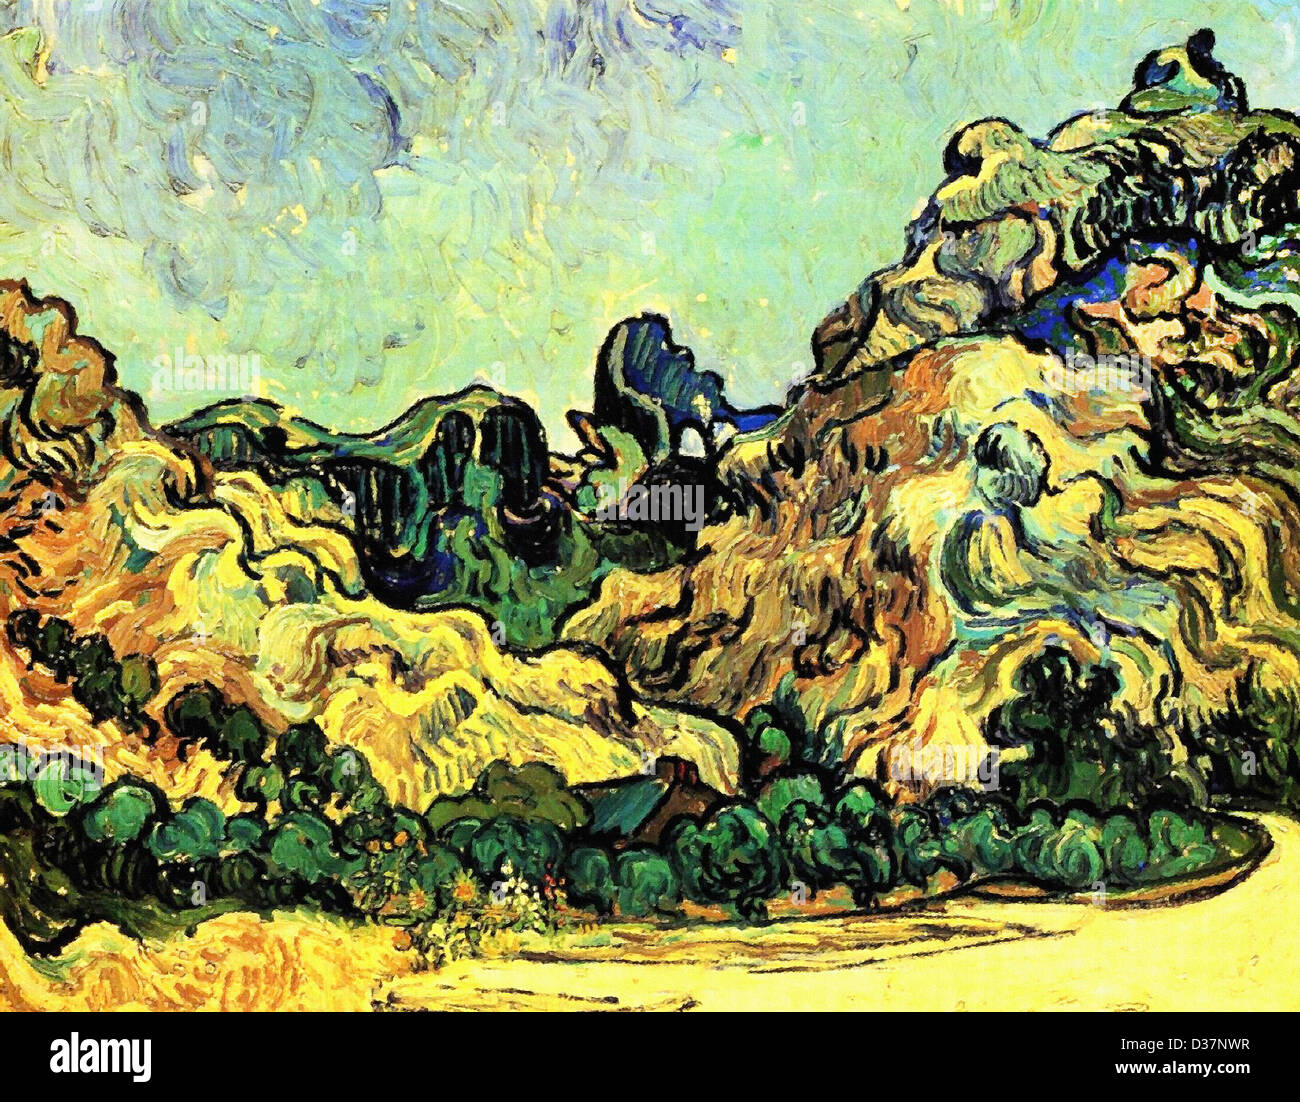 Vincent van Gogh, Mountains at Saint-Remy with Dark Cottage. 1889. Post-Impressionism. Oil on canvas. - Stock Image